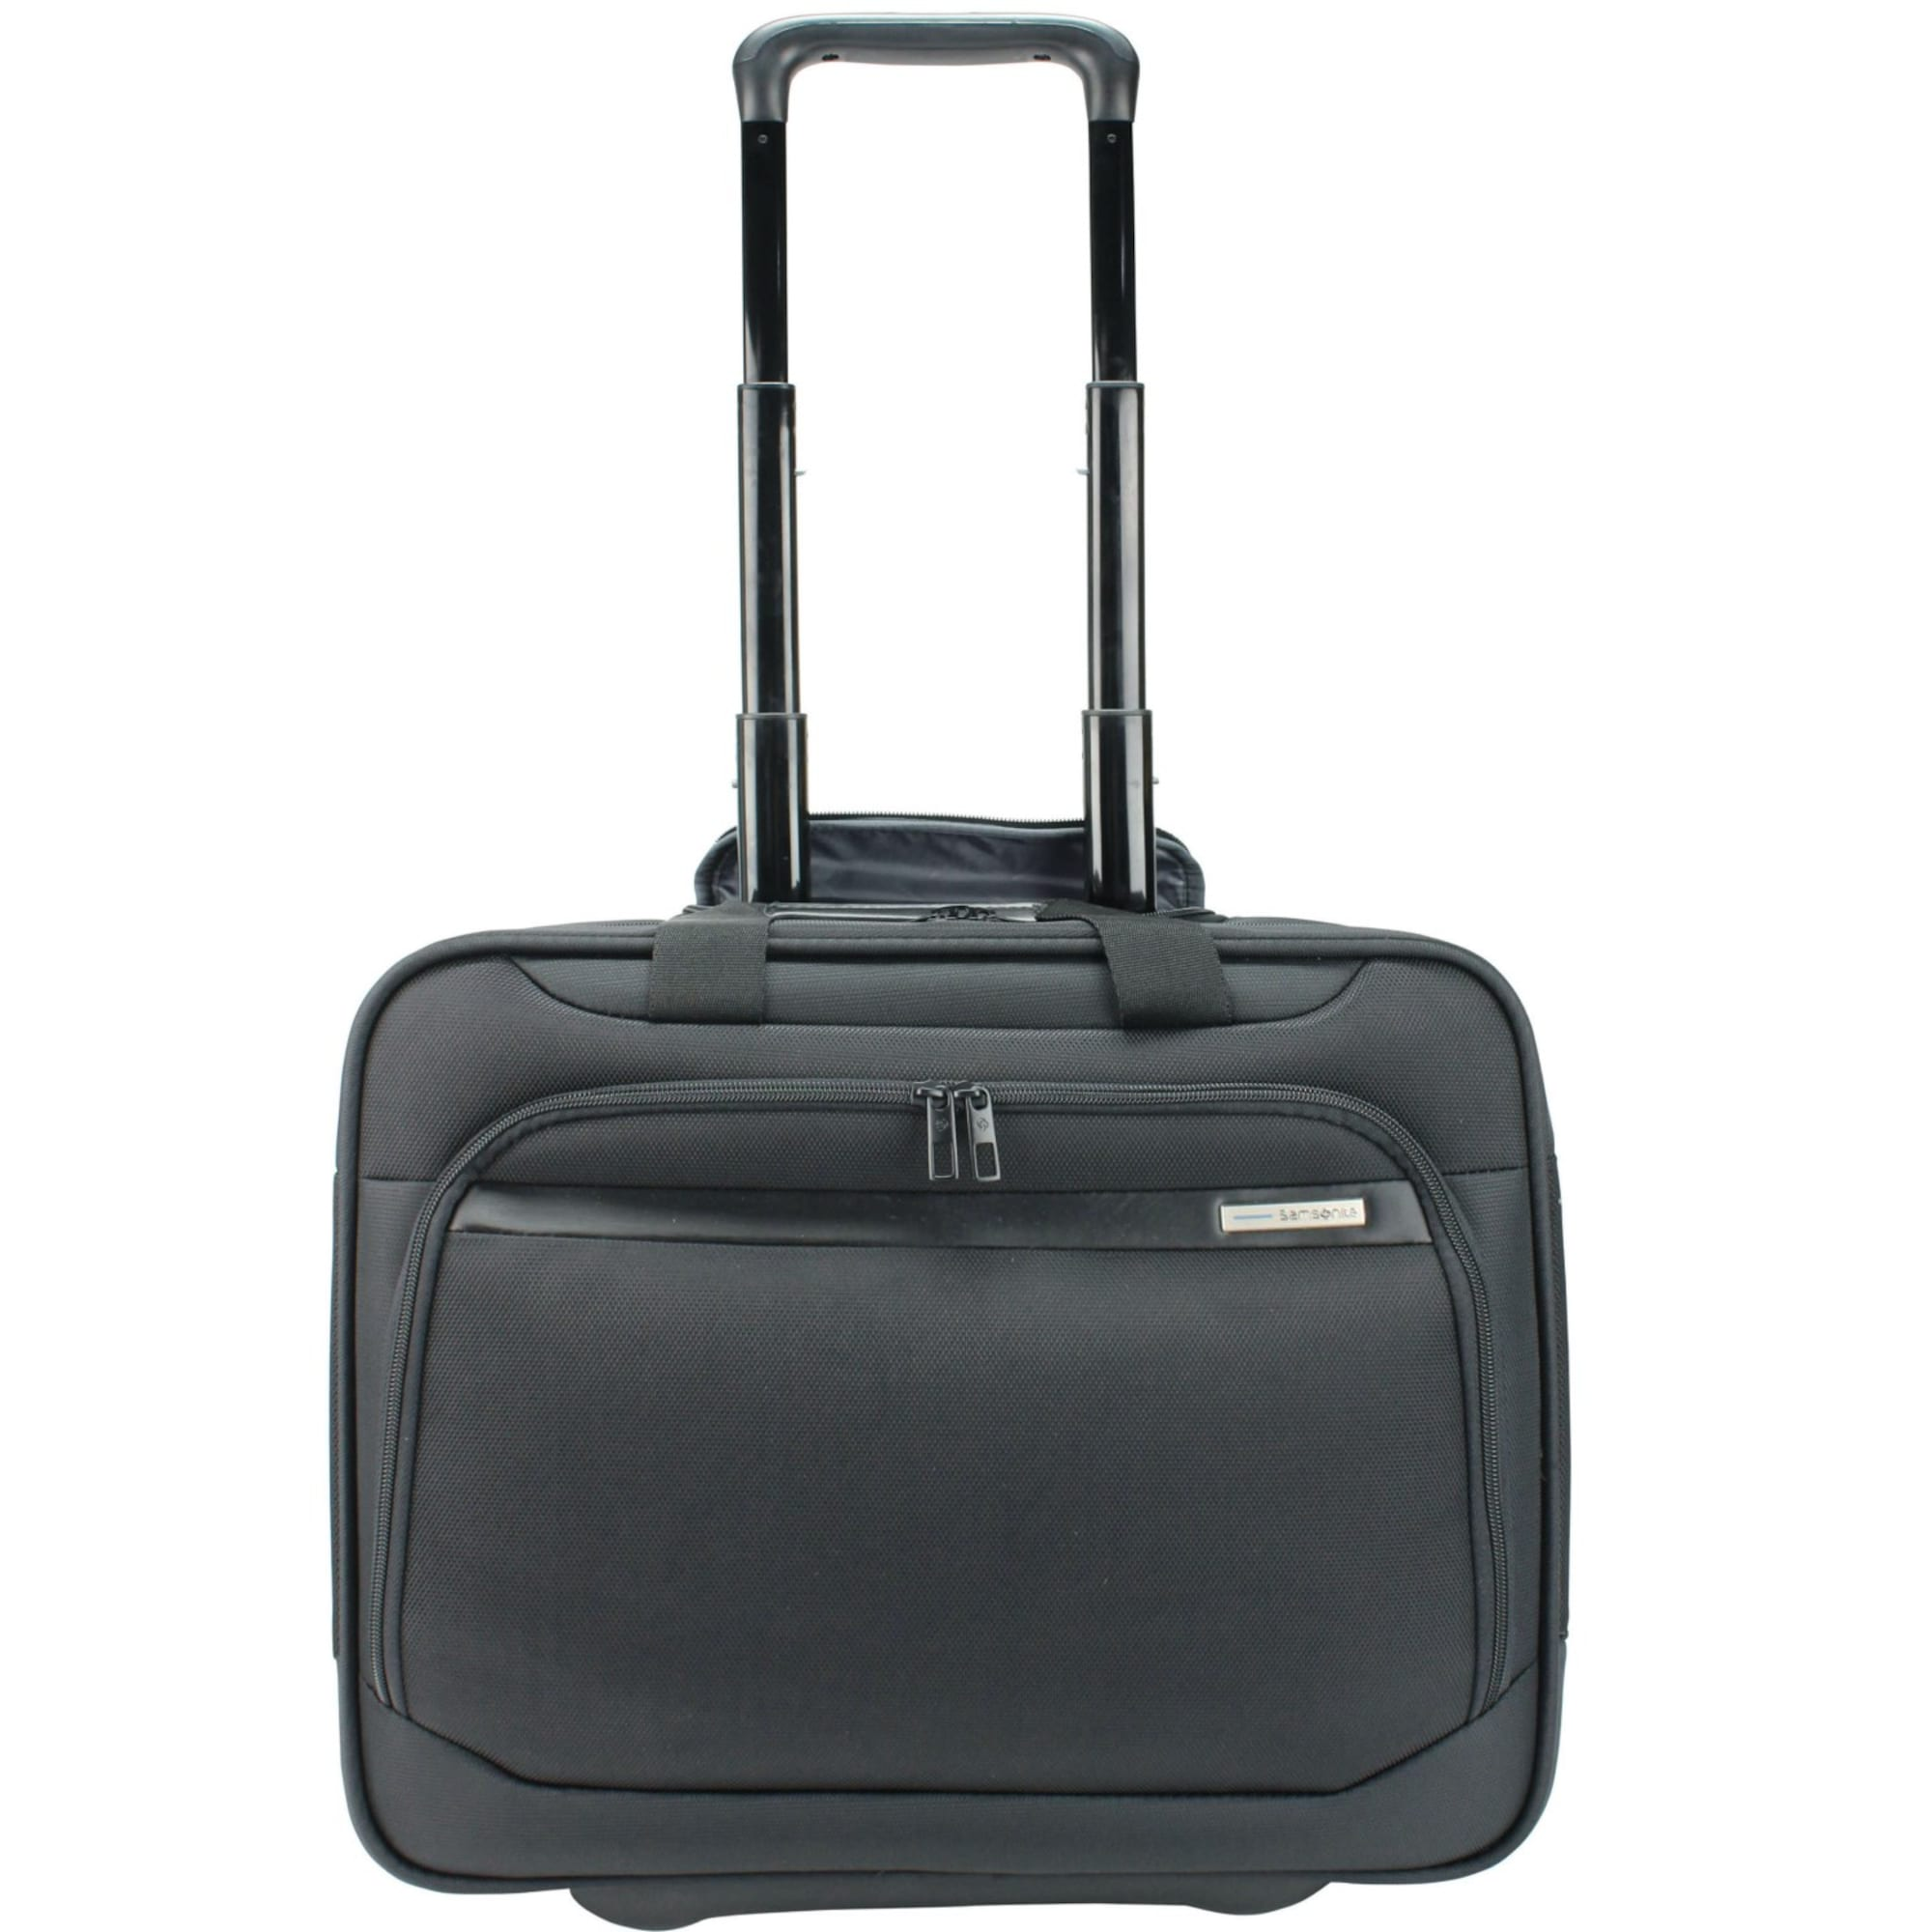 Businesstrolley | Taschen > Businesstaschen > Business Trolleys | Grau | Samsonite